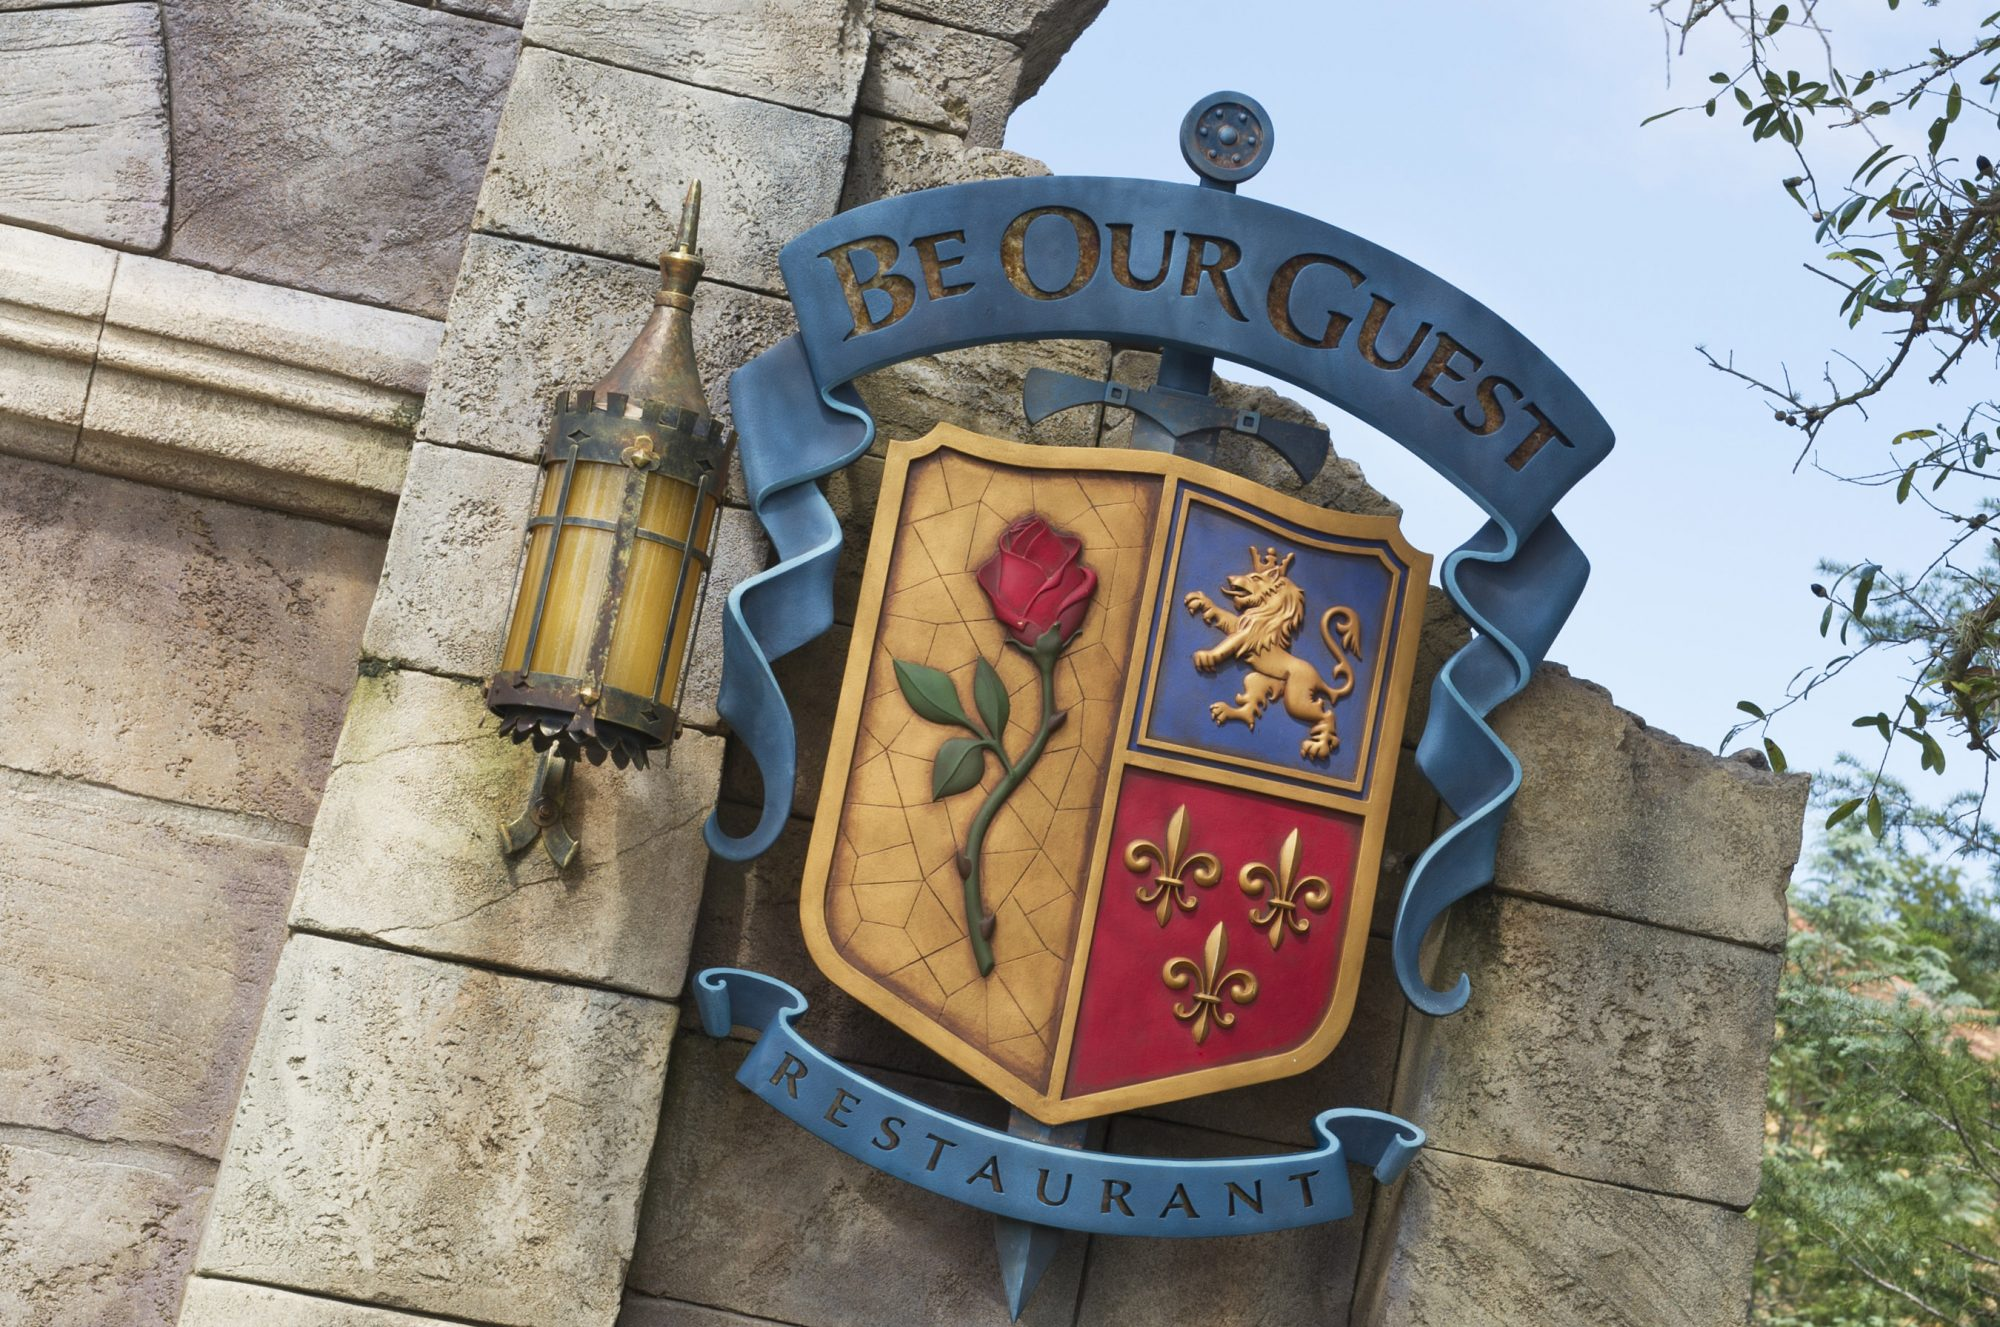 Be Our Guest Restaurant Exterior